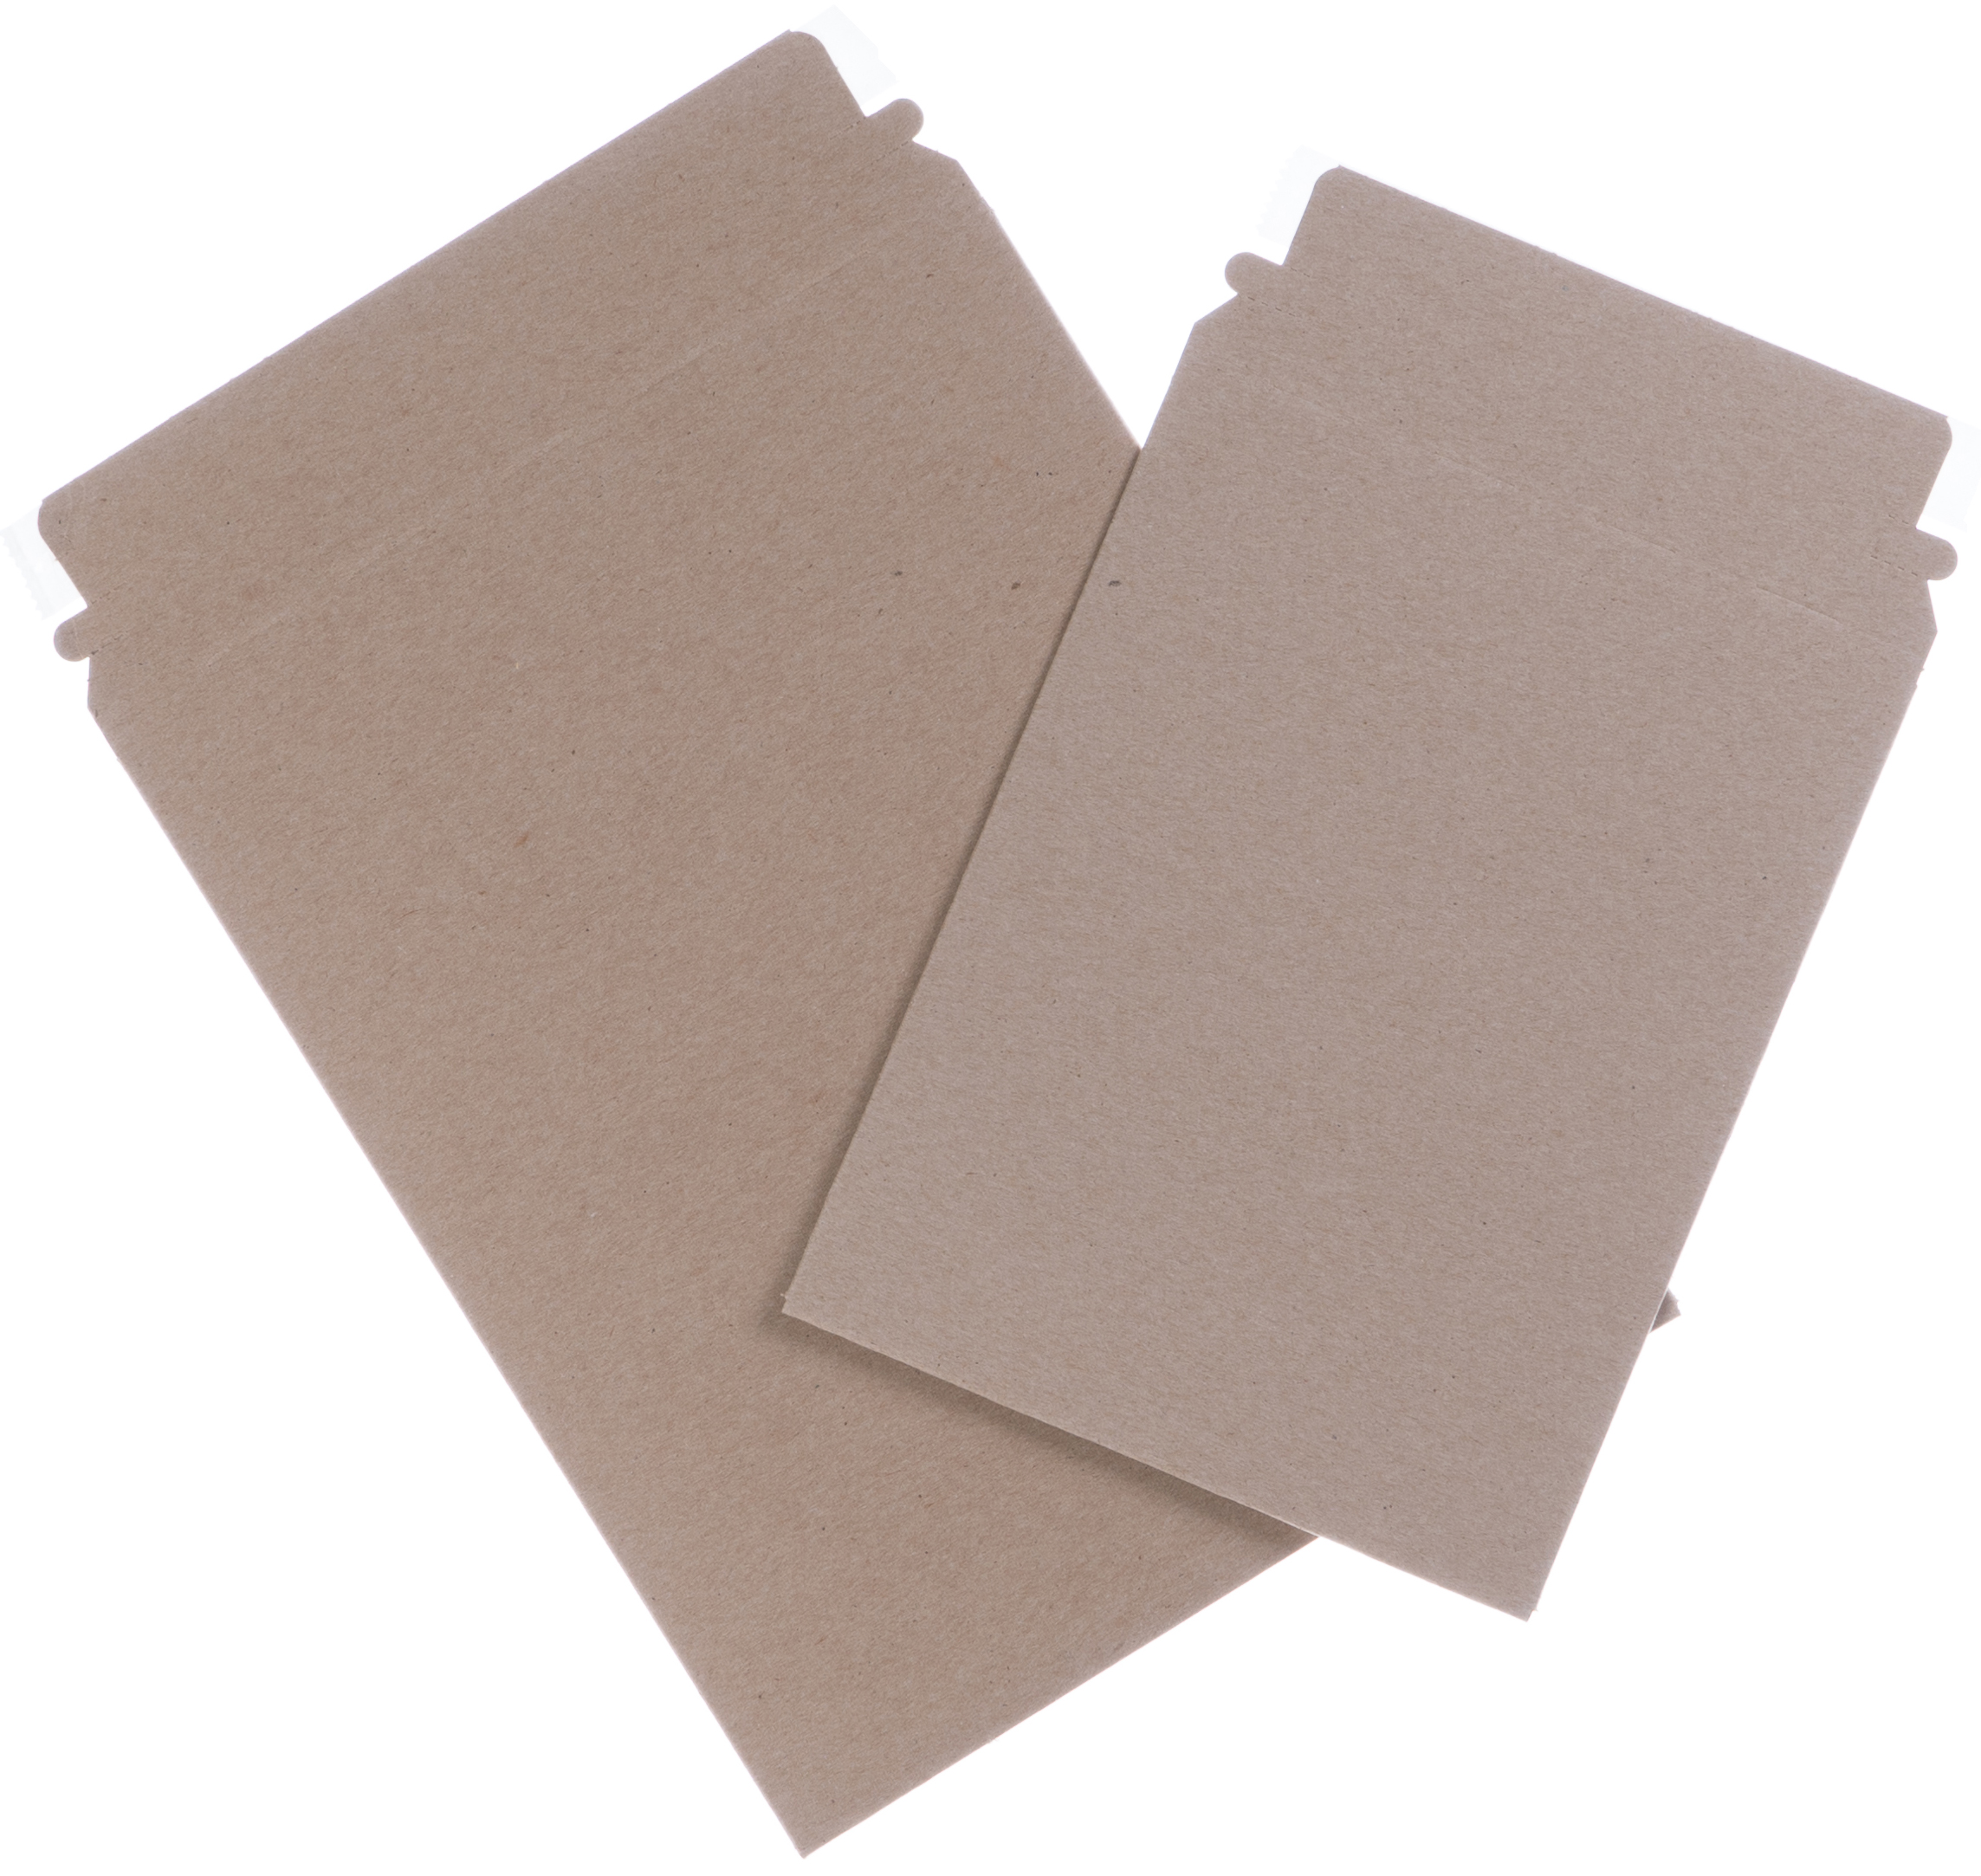 Empty cardboard shipping envelopes